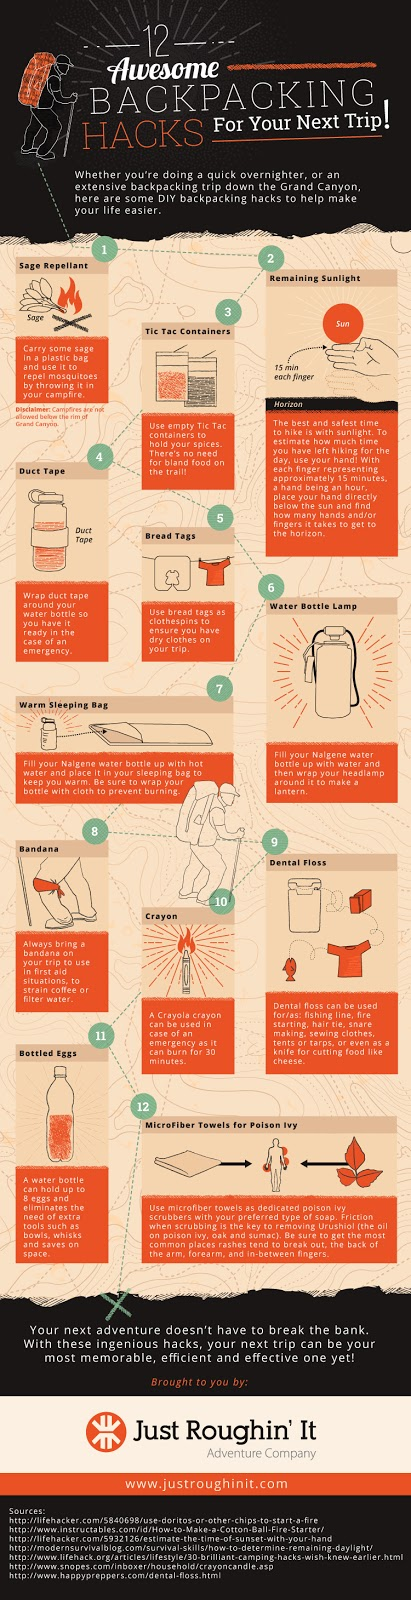 12 Backpacking Hacks for Your Next Trip! #Infographic